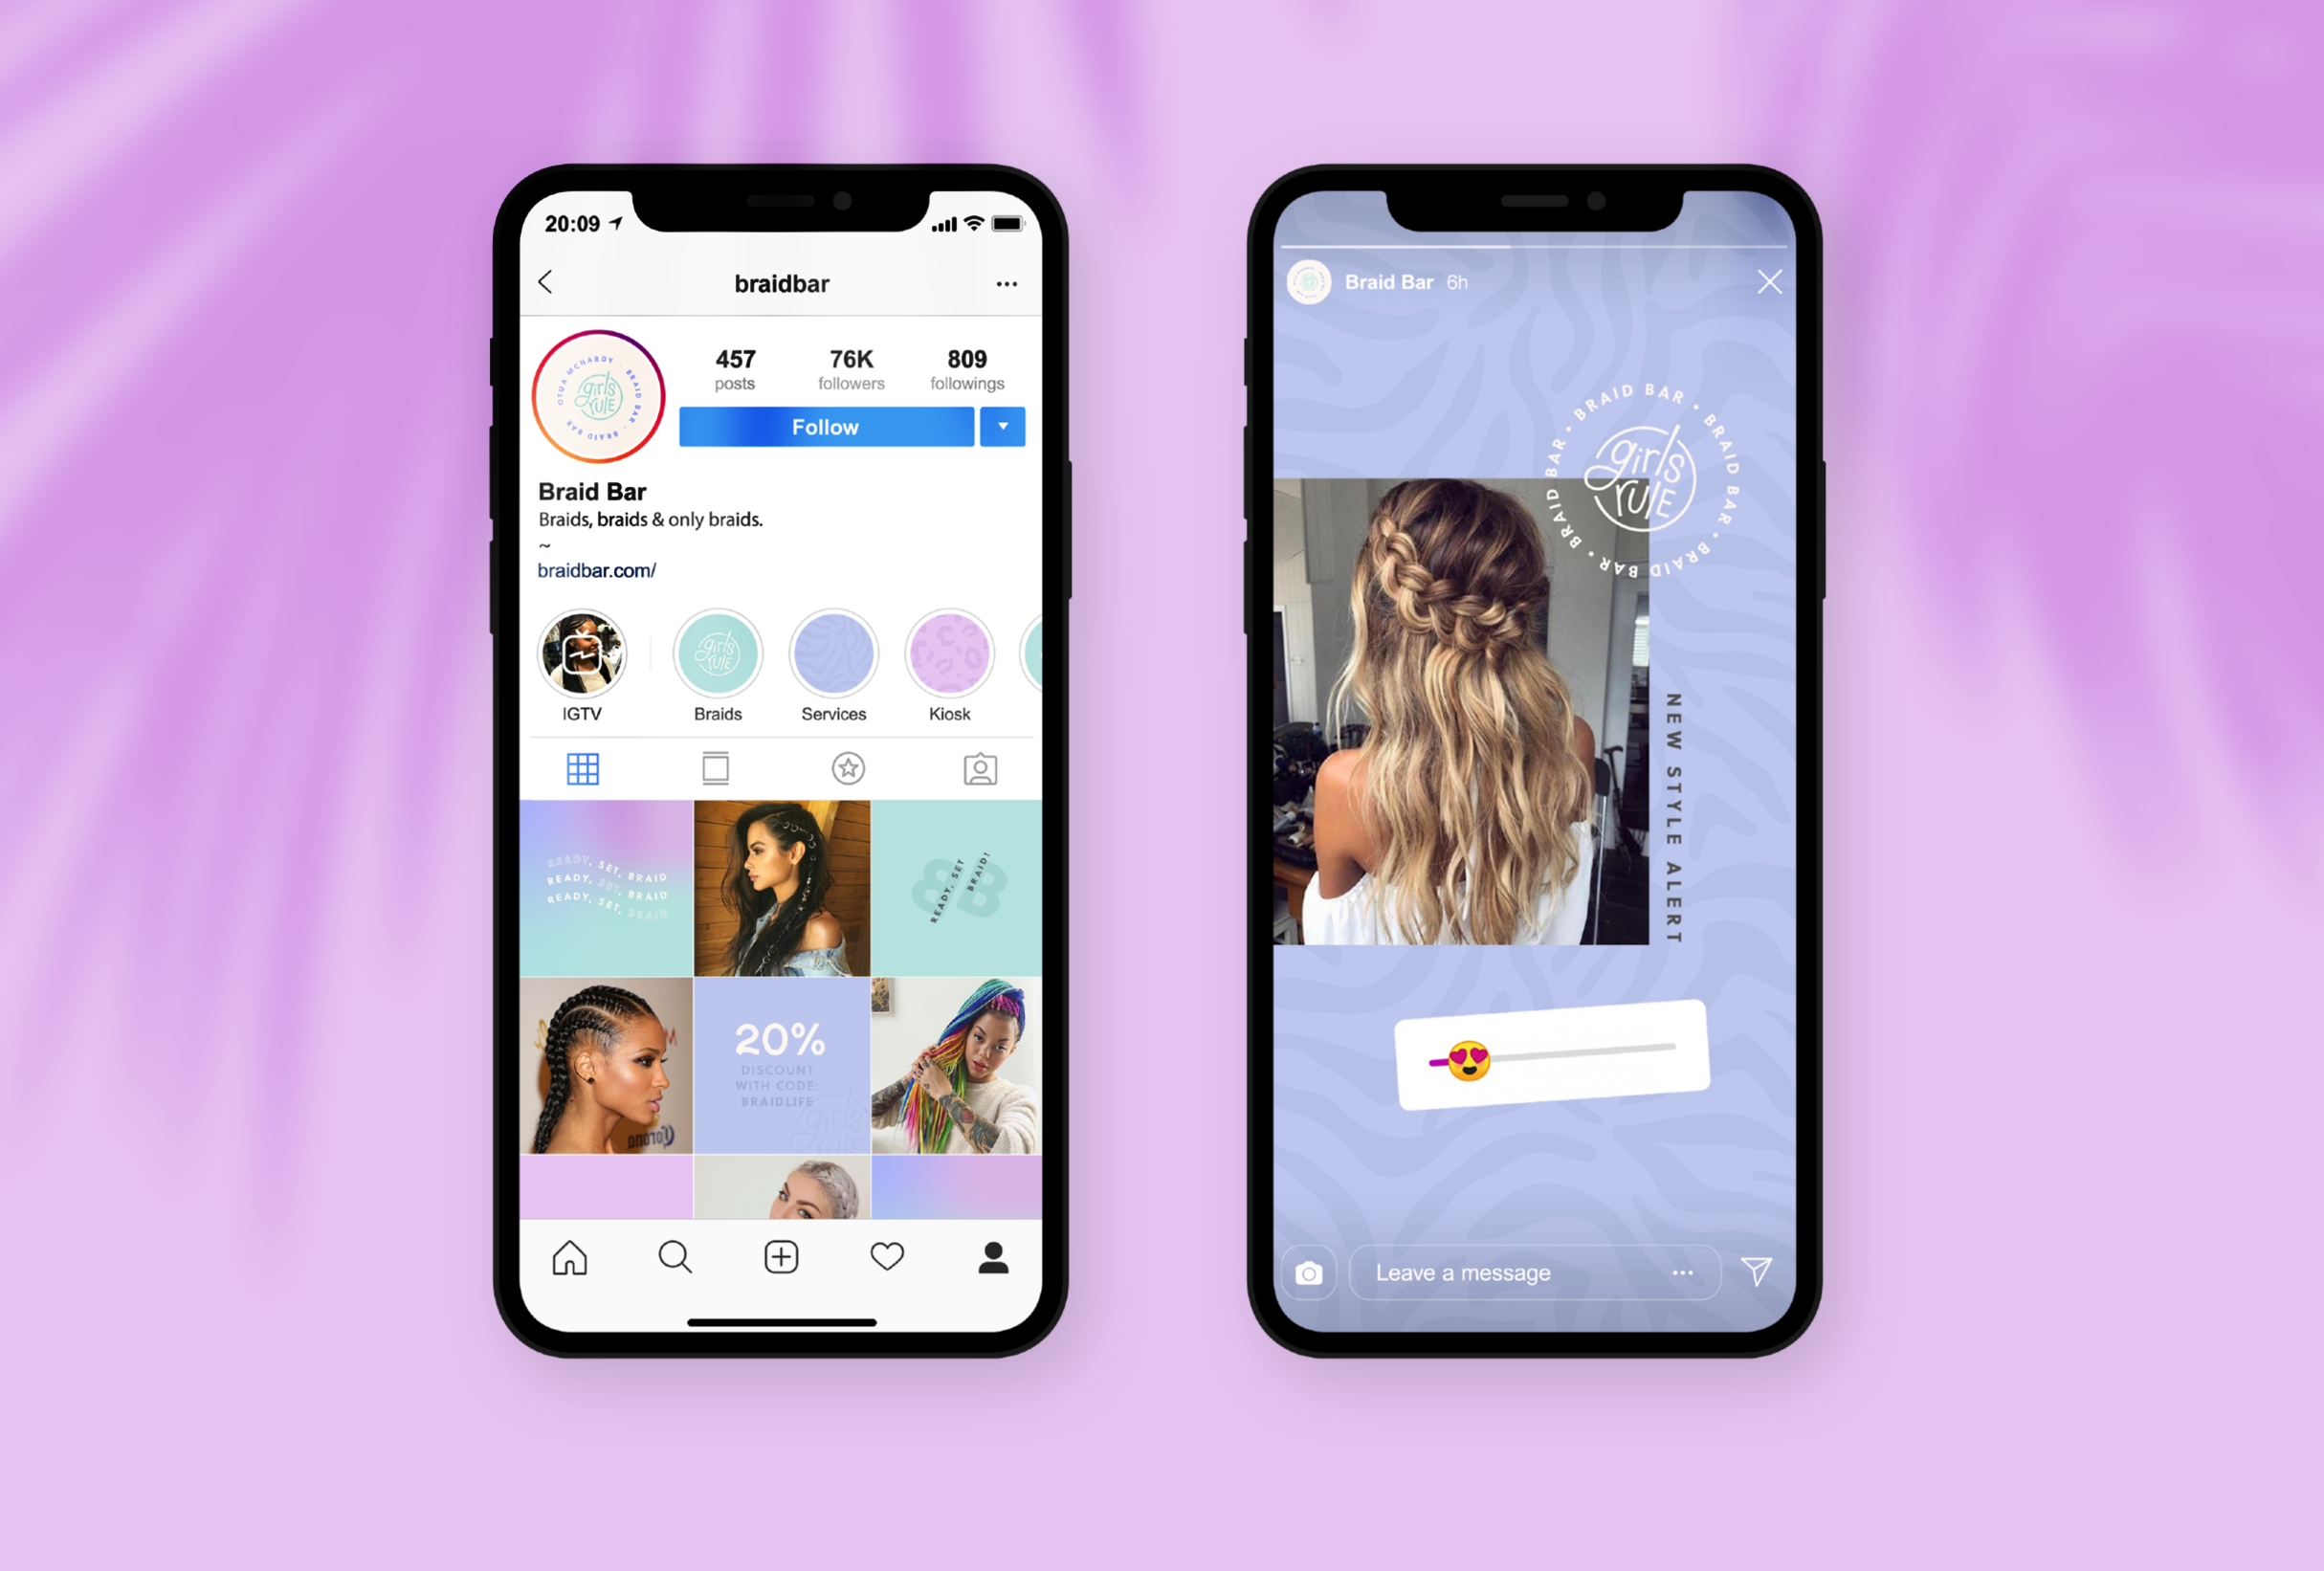 Instagram profile for Braid Bar, providing a premium experience and high-quality braiding services - designed by Wiltshire-based graphic designer, Kaye Huett